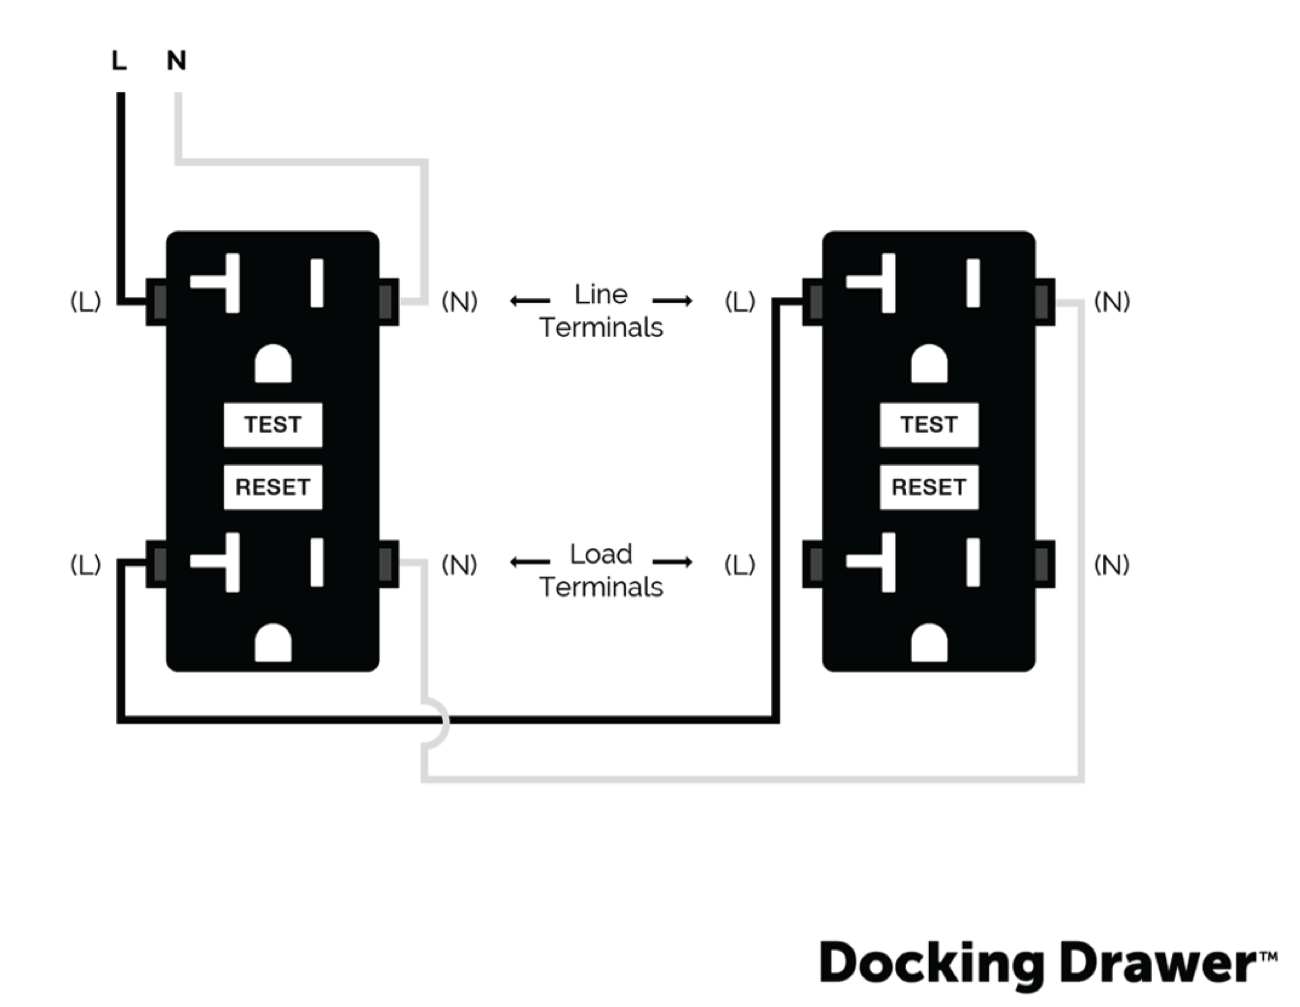 gfci wiring diagrams with garage docking drawer blade and style drawer blade series   a list of faqs  docking drawer blade and style drawer